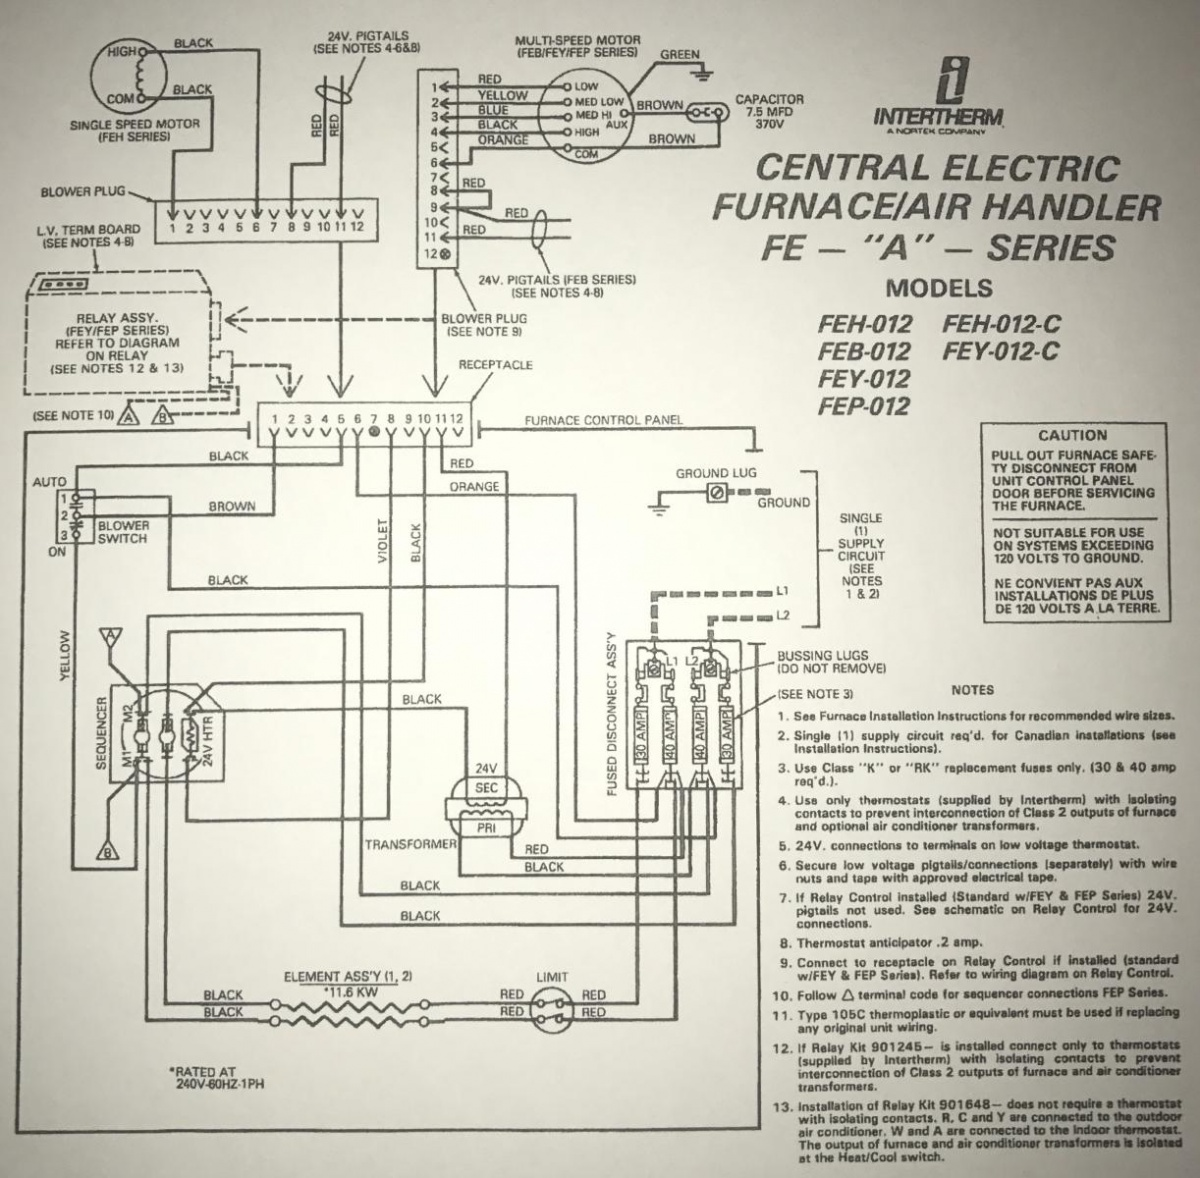 1991 intertherm nordyne furnace with added ac split system hvac York Furnace Wiring Diagram